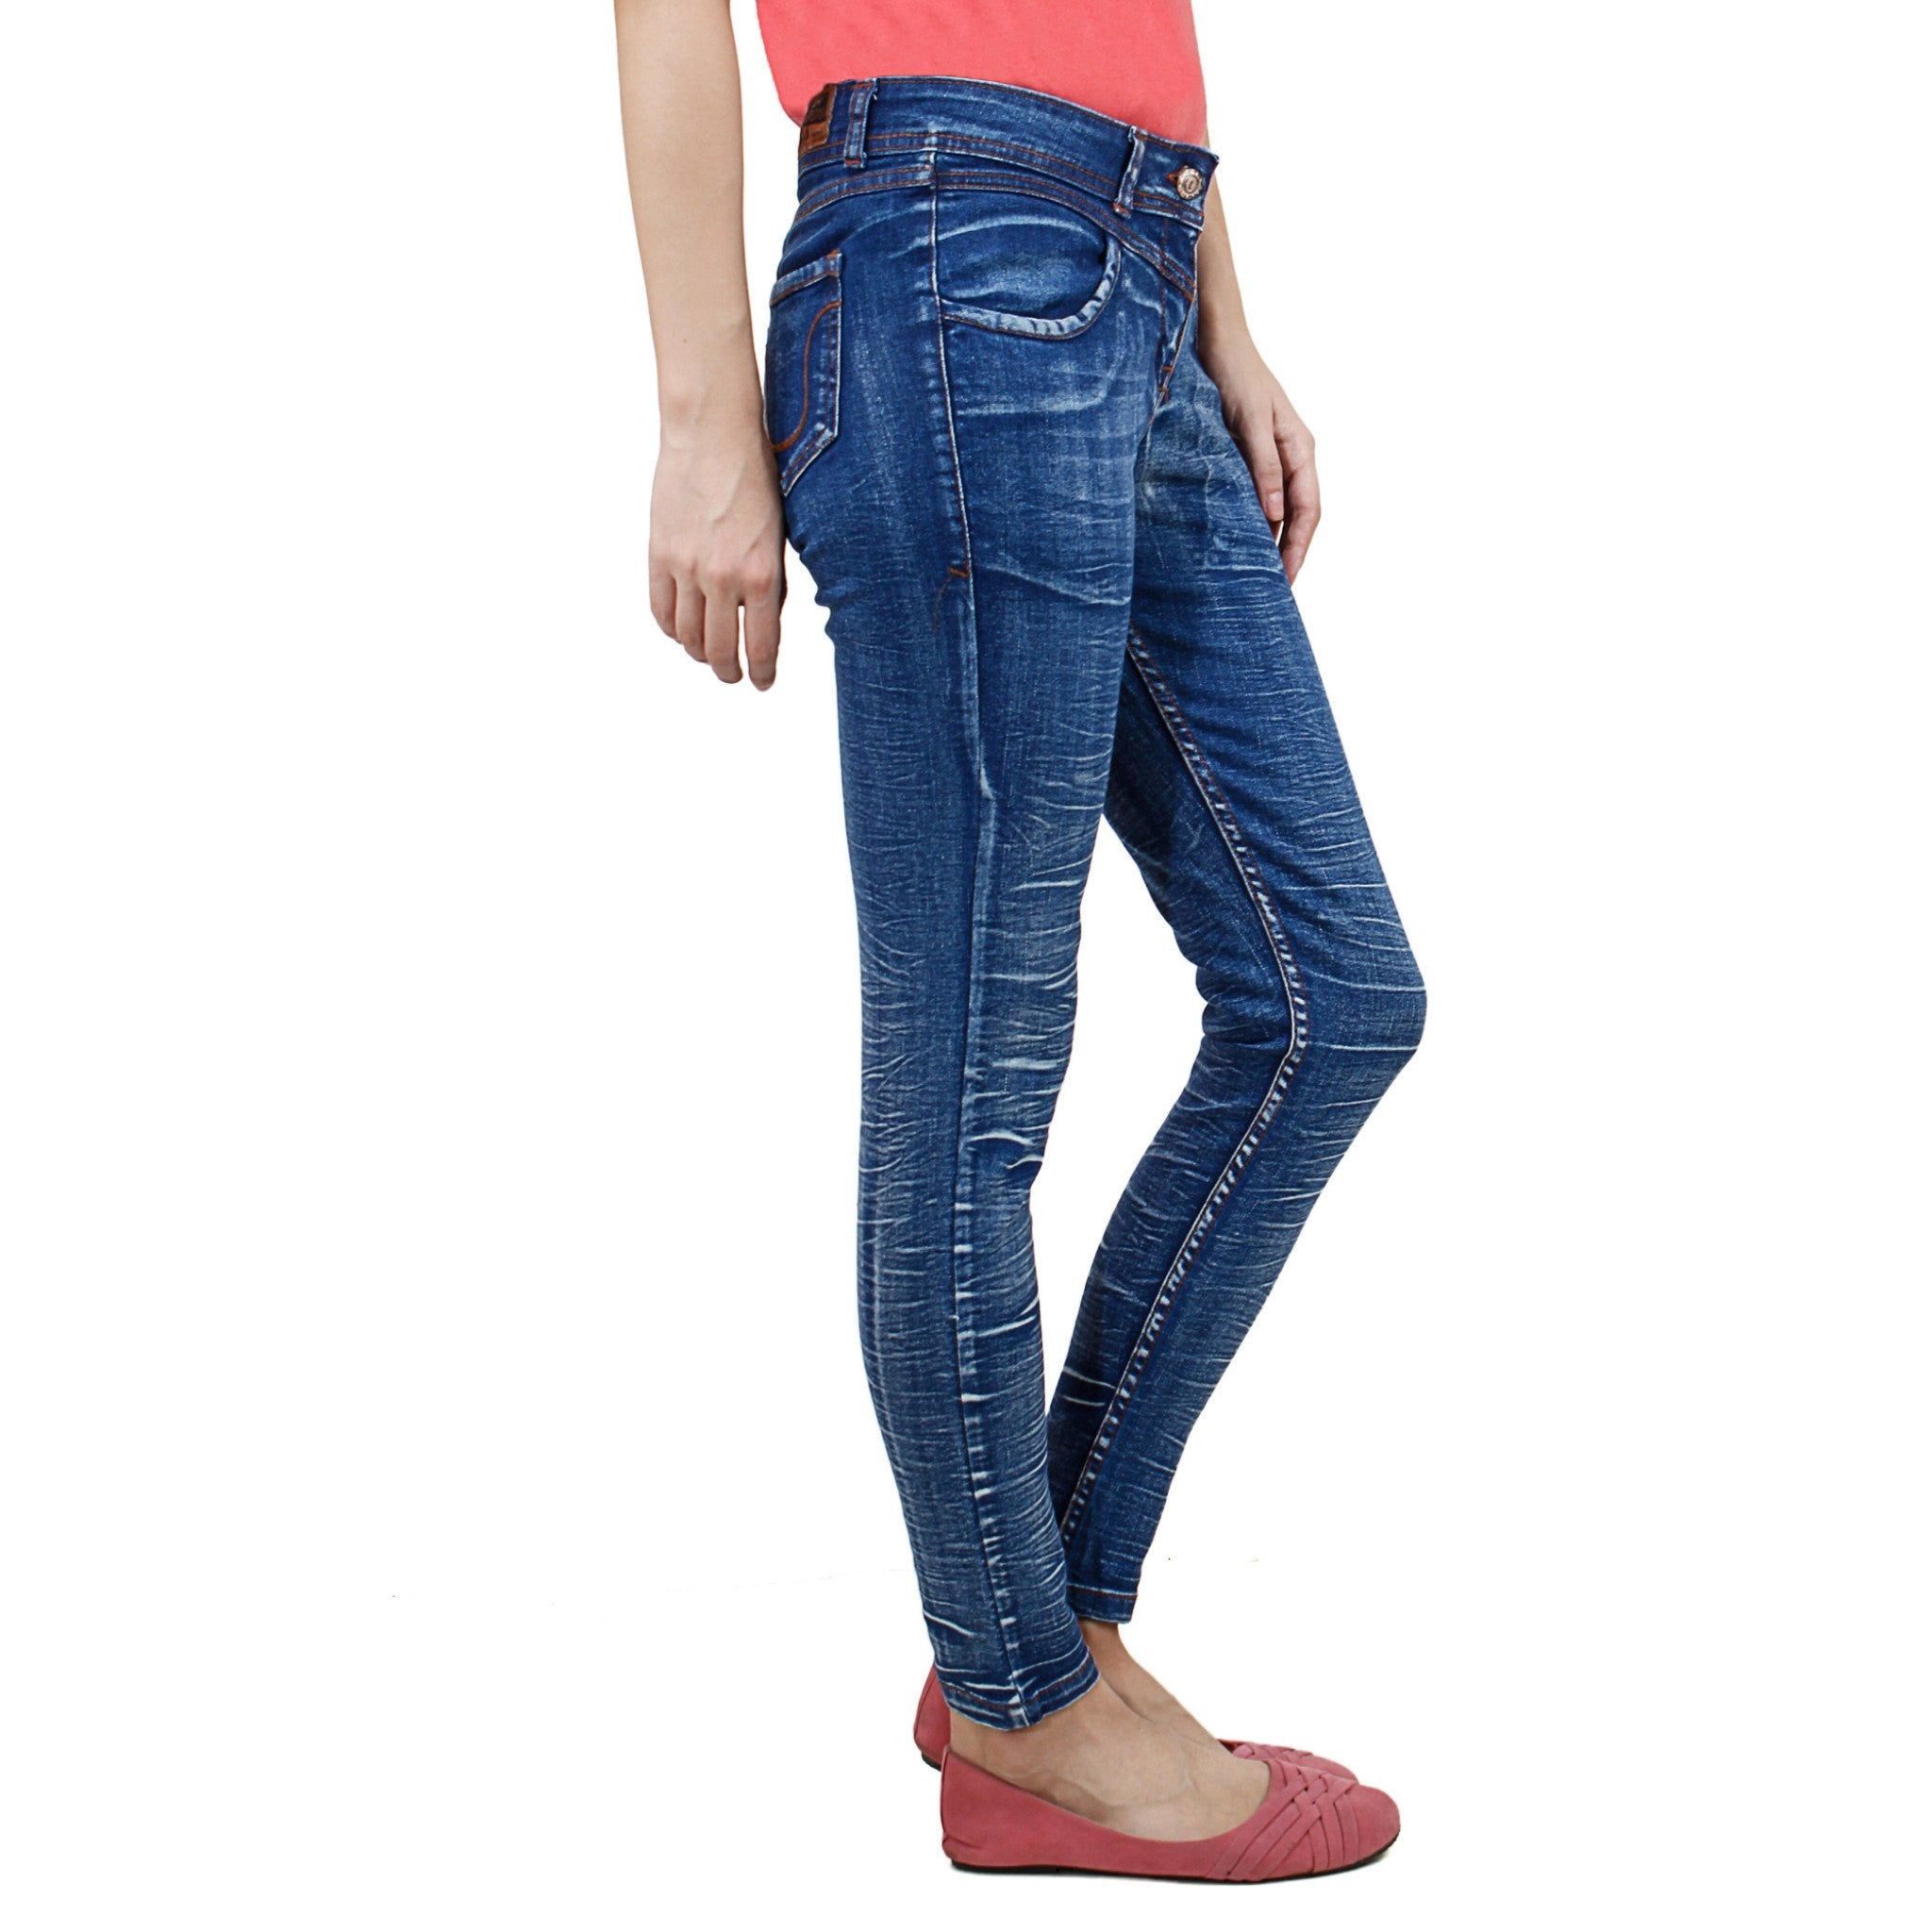 Uber Blue Denim Jeans right side view